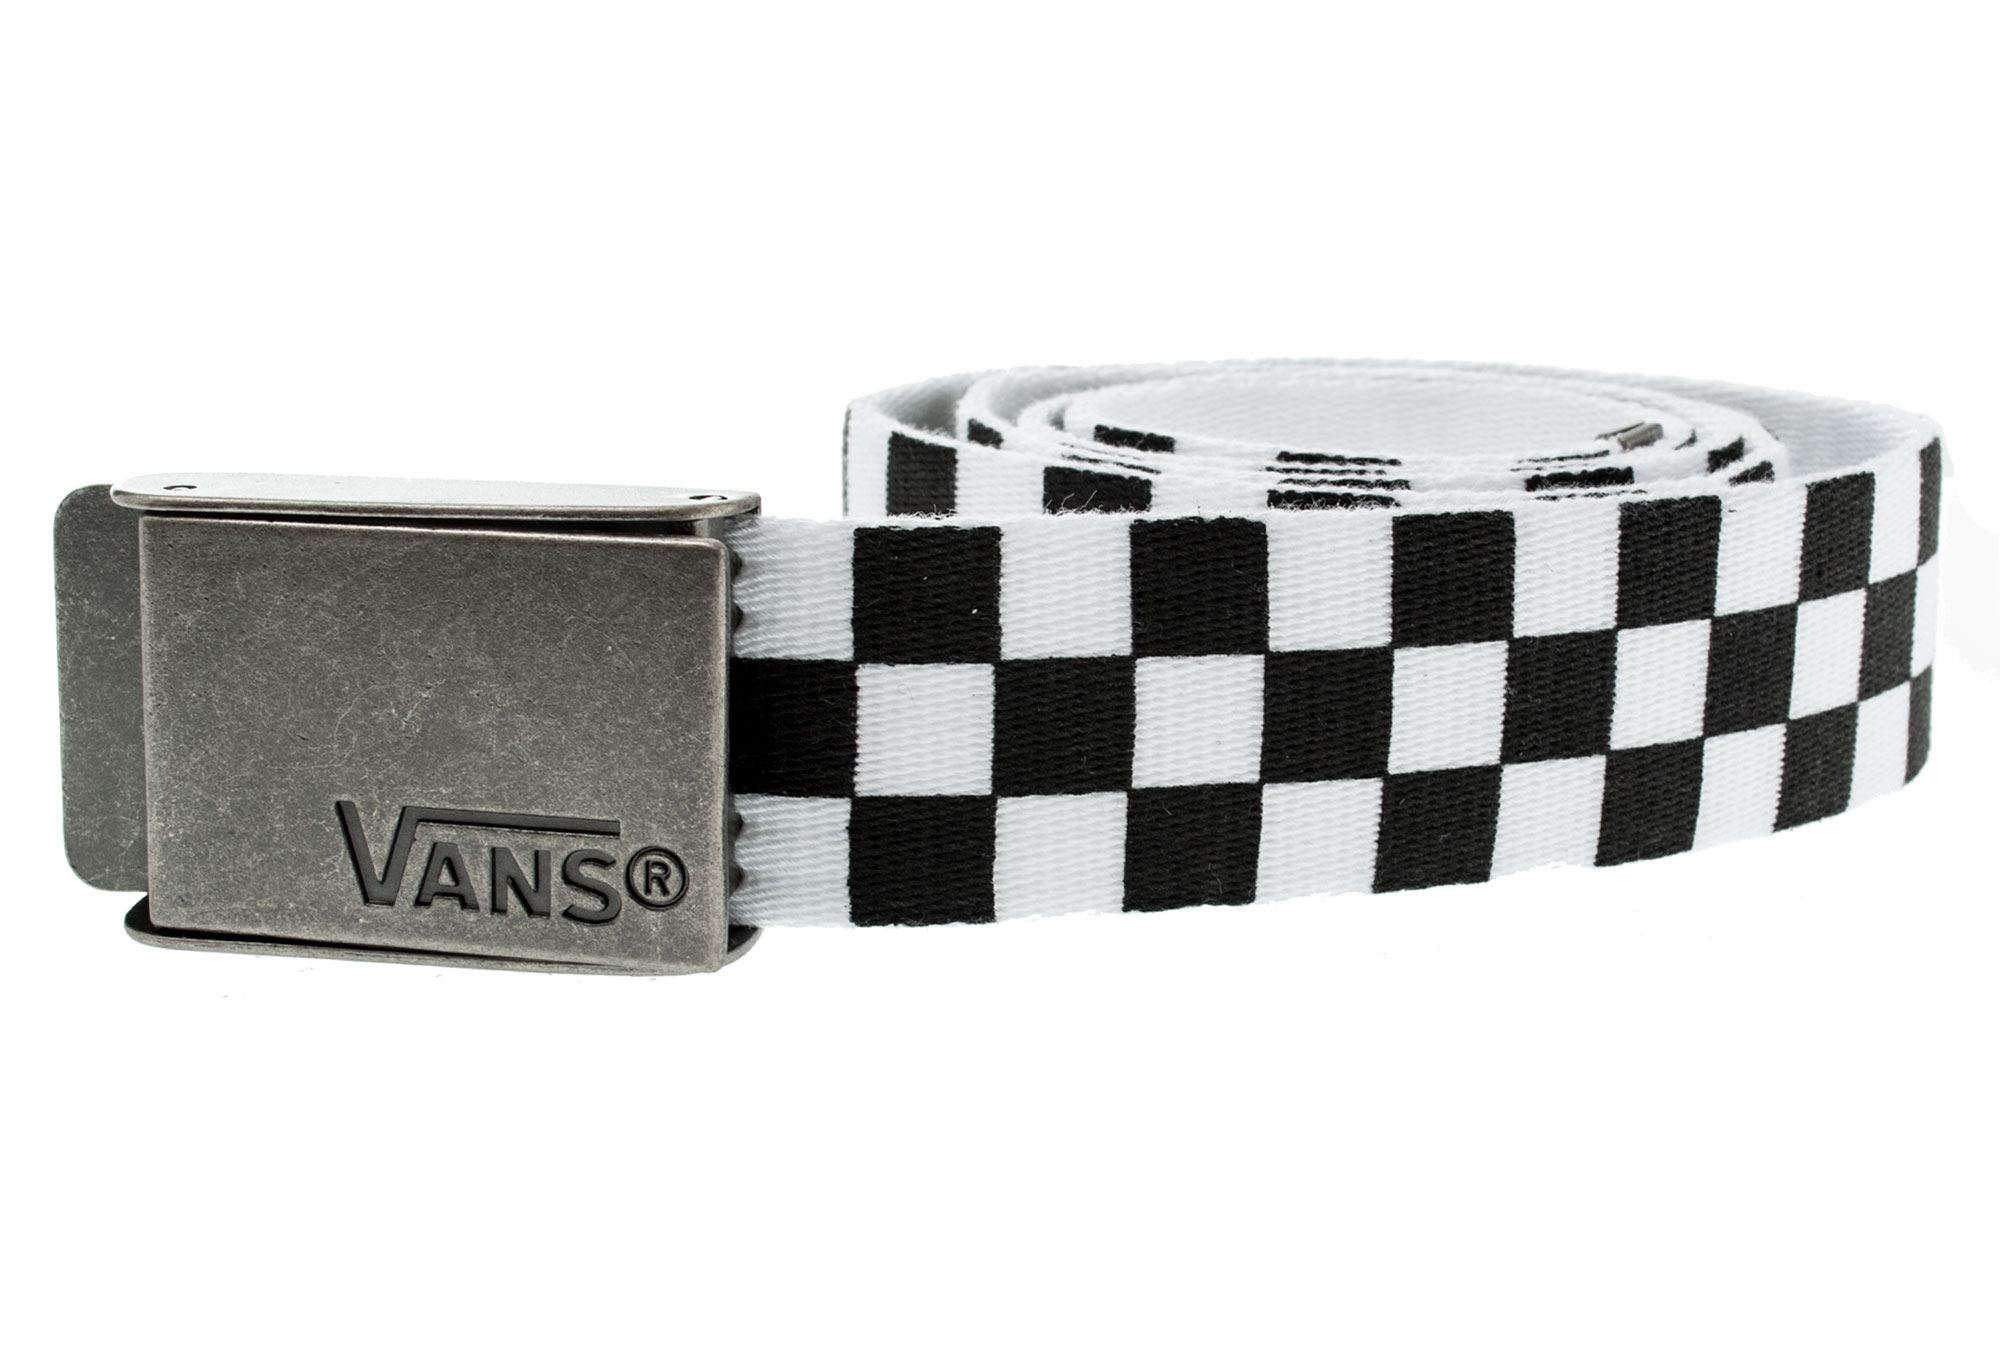 vans ceinture deppster noir blanc carreaux. Black Bedroom Furniture Sets. Home Design Ideas